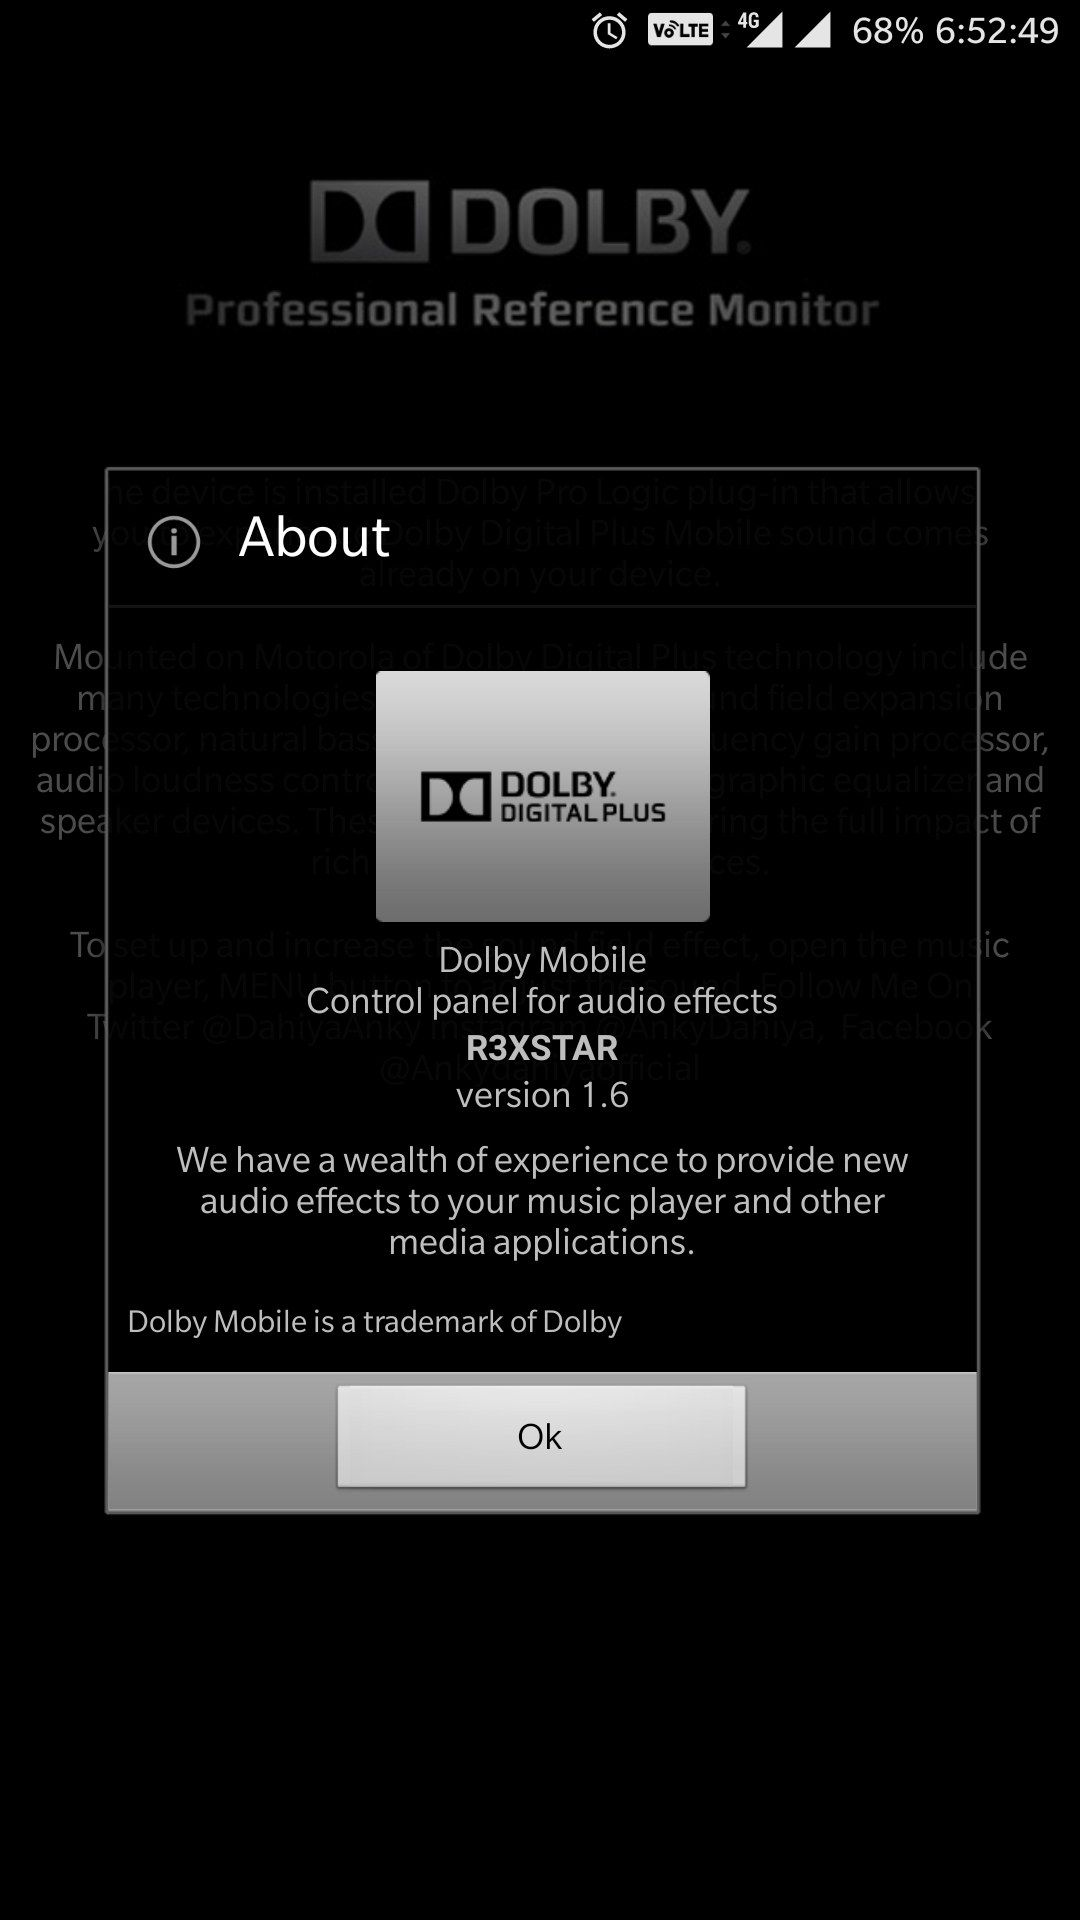 poweramp dolby digital plus - OnePlus Community